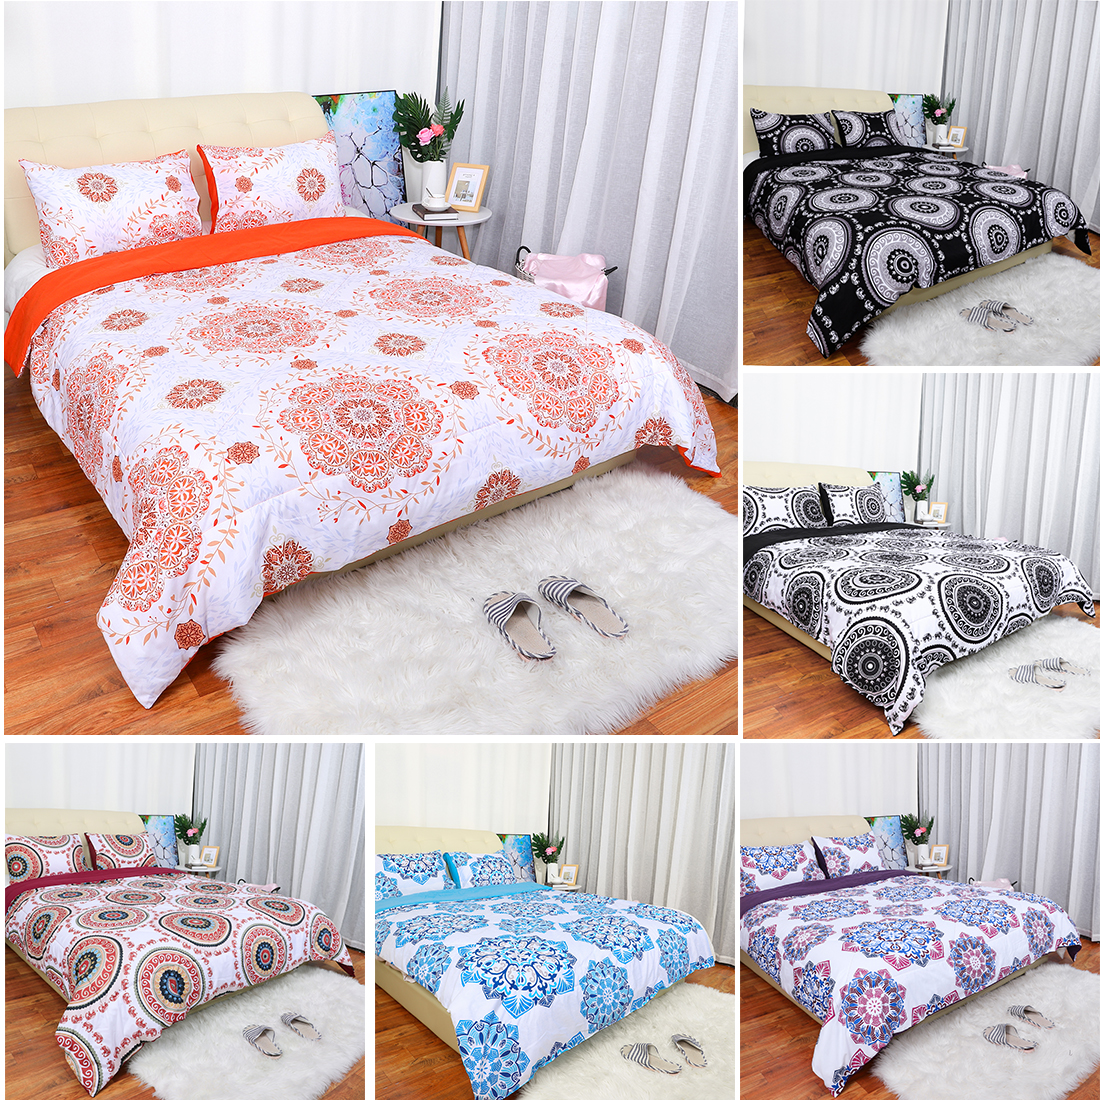 3 Pieces Indian Mandala Duvet Bedding Hippie Bohemian Quilt